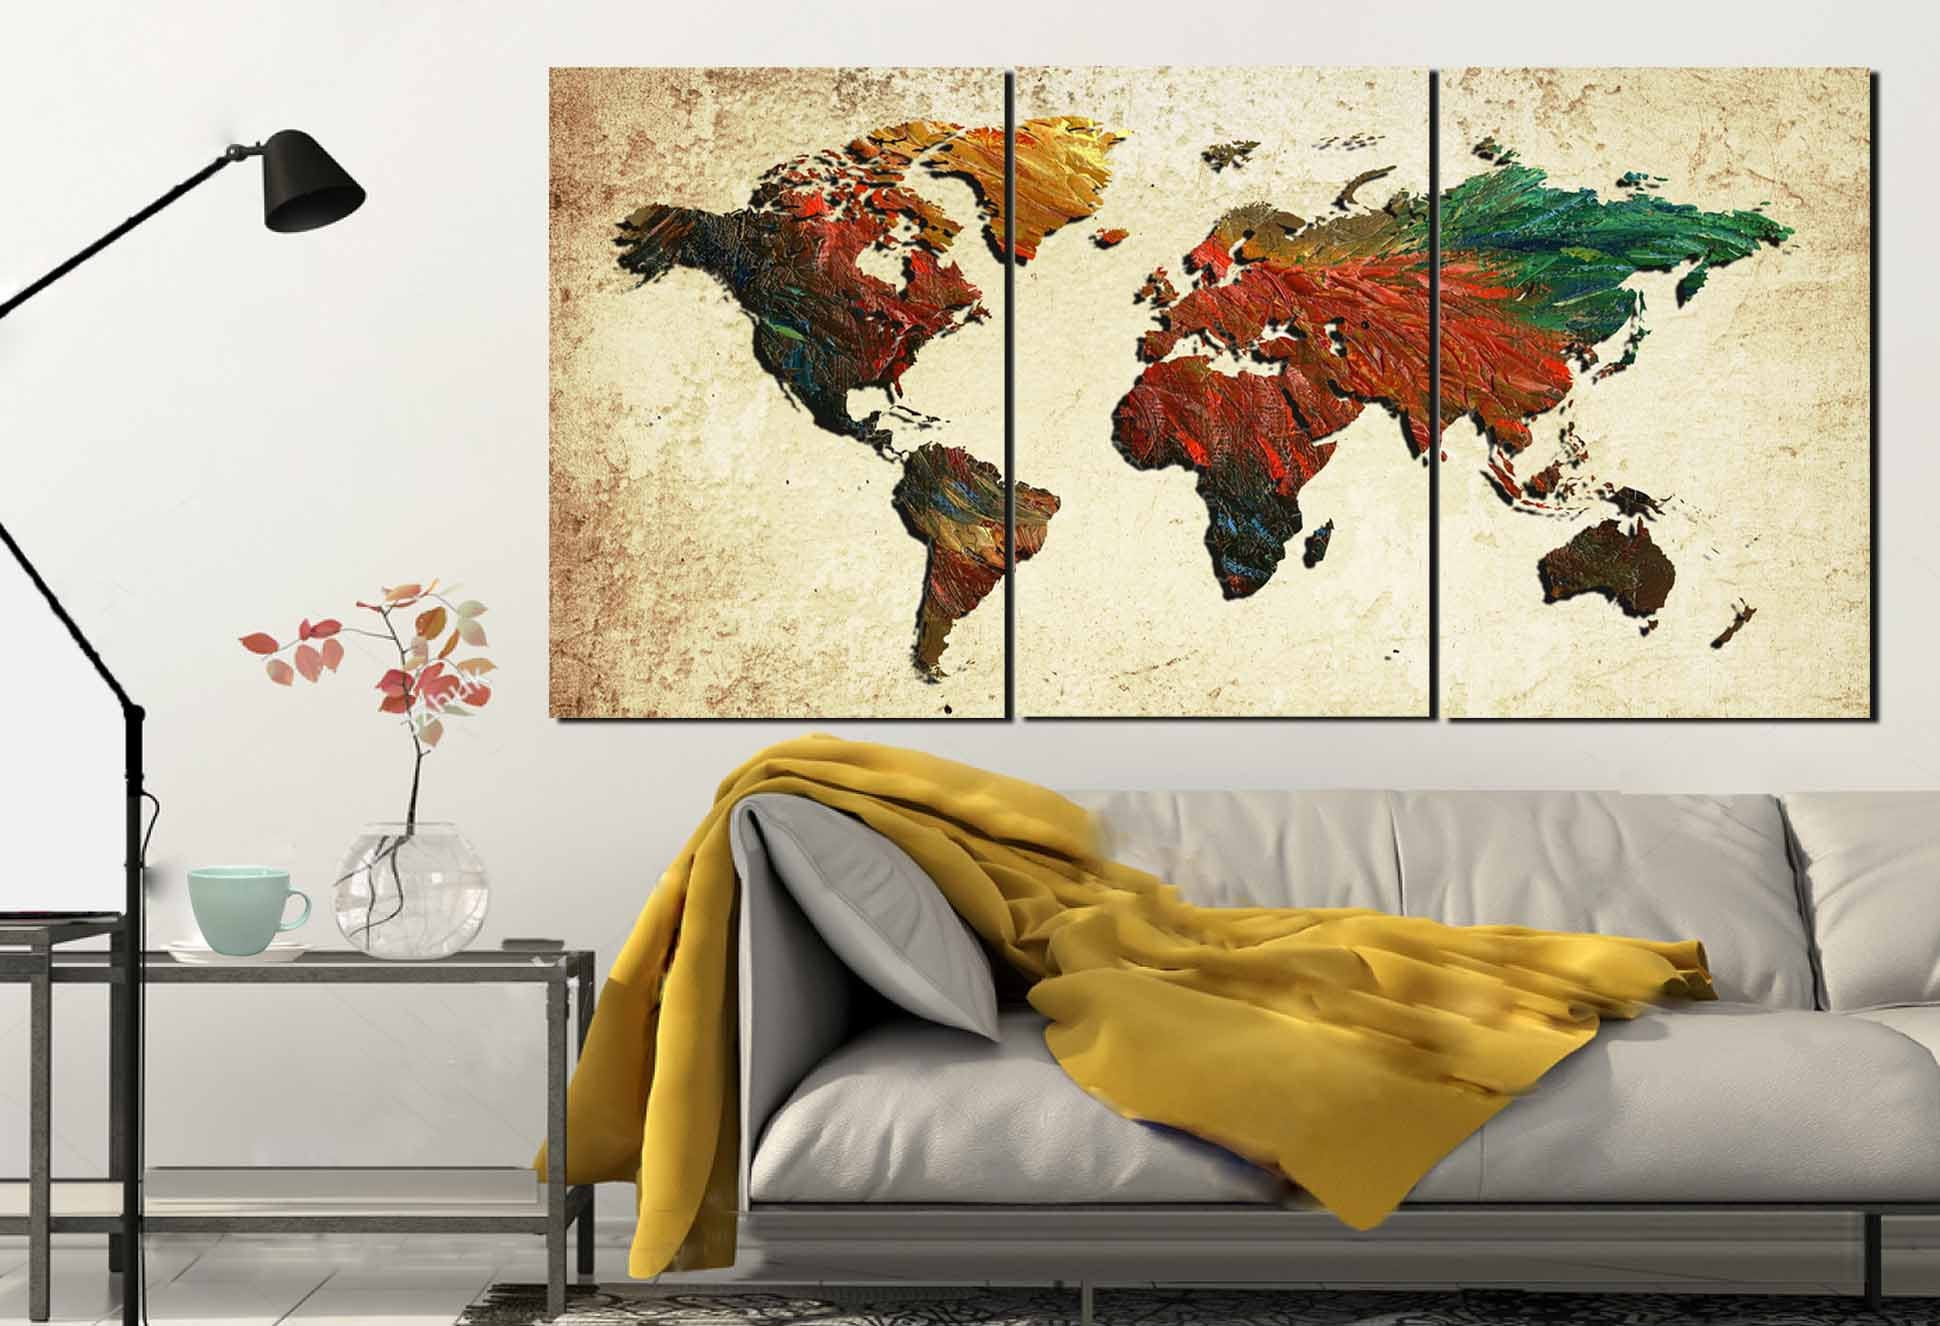 Large world mapworld map world map painting abstract map wall art large world mapworld map world map painting abstract map wall artmap oil paintingworld map canvas printworld map rooster pattern gumiabroncs Images